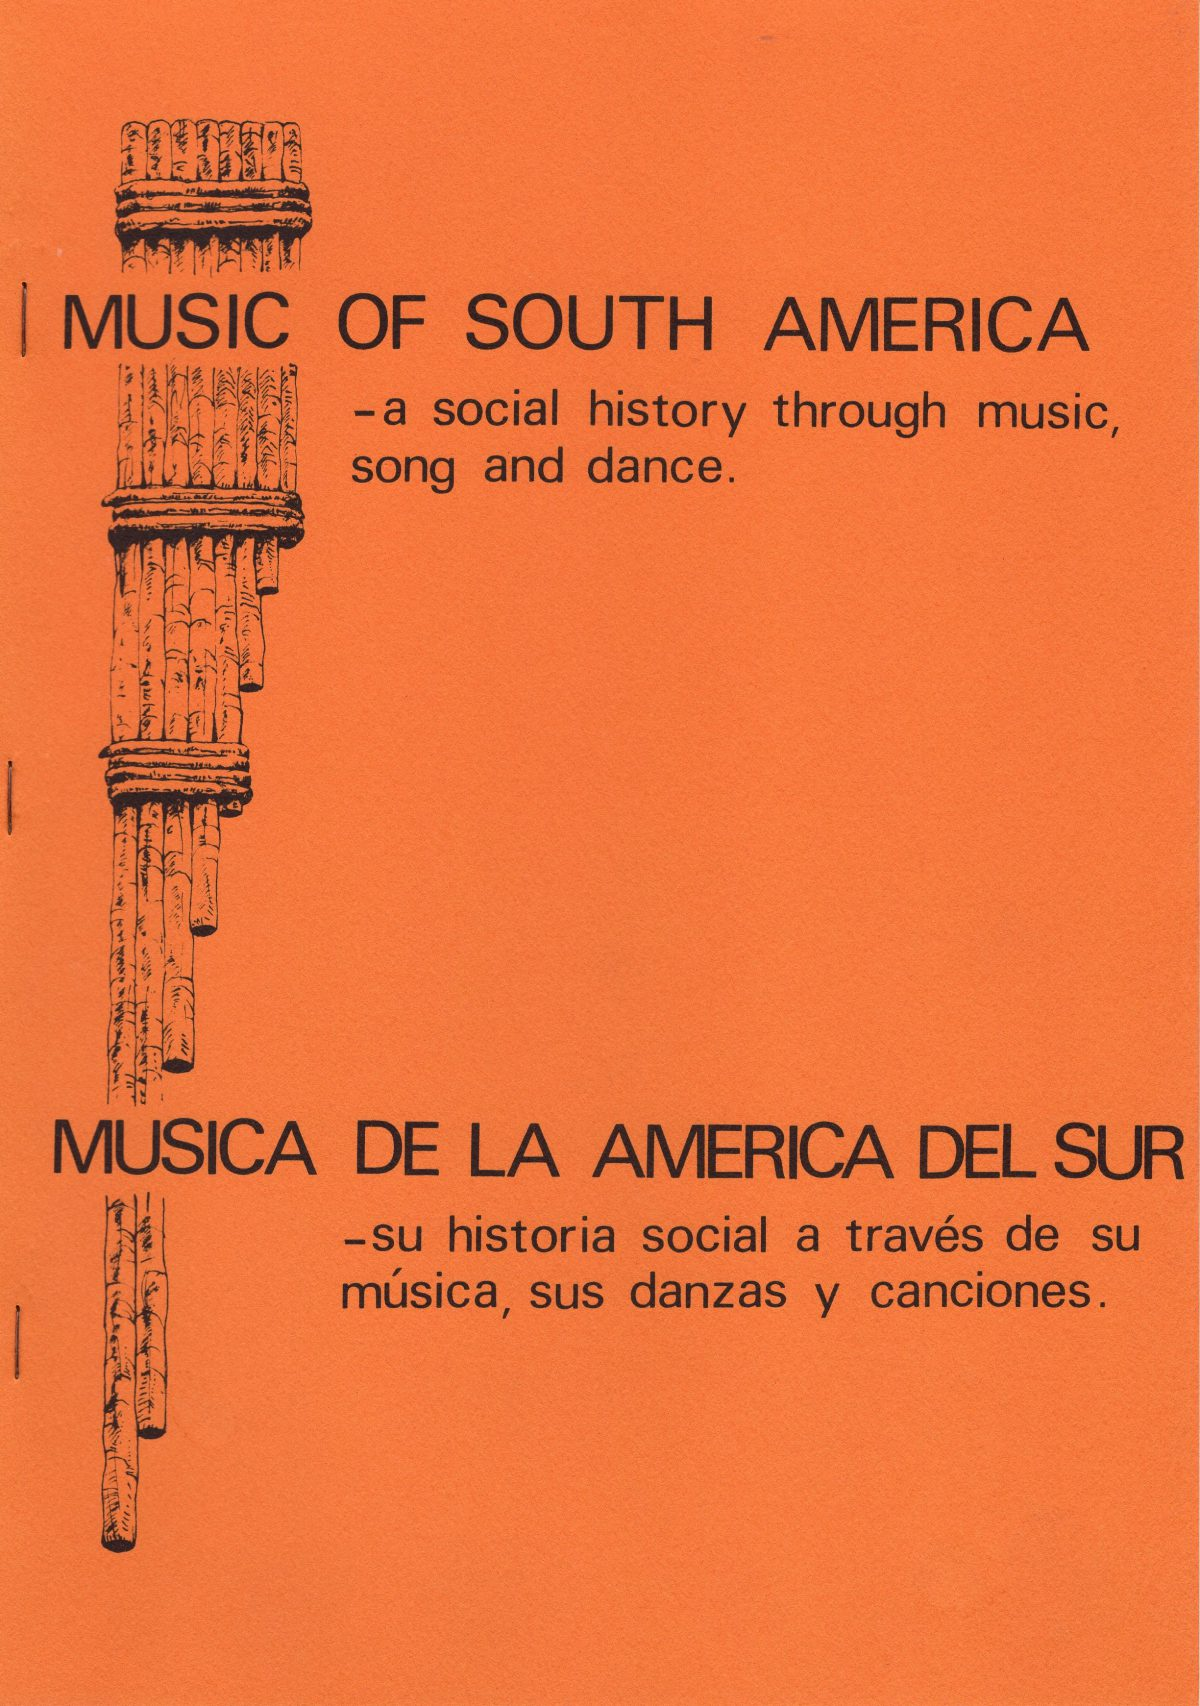 Concert Program for the South American Boîte, 1980